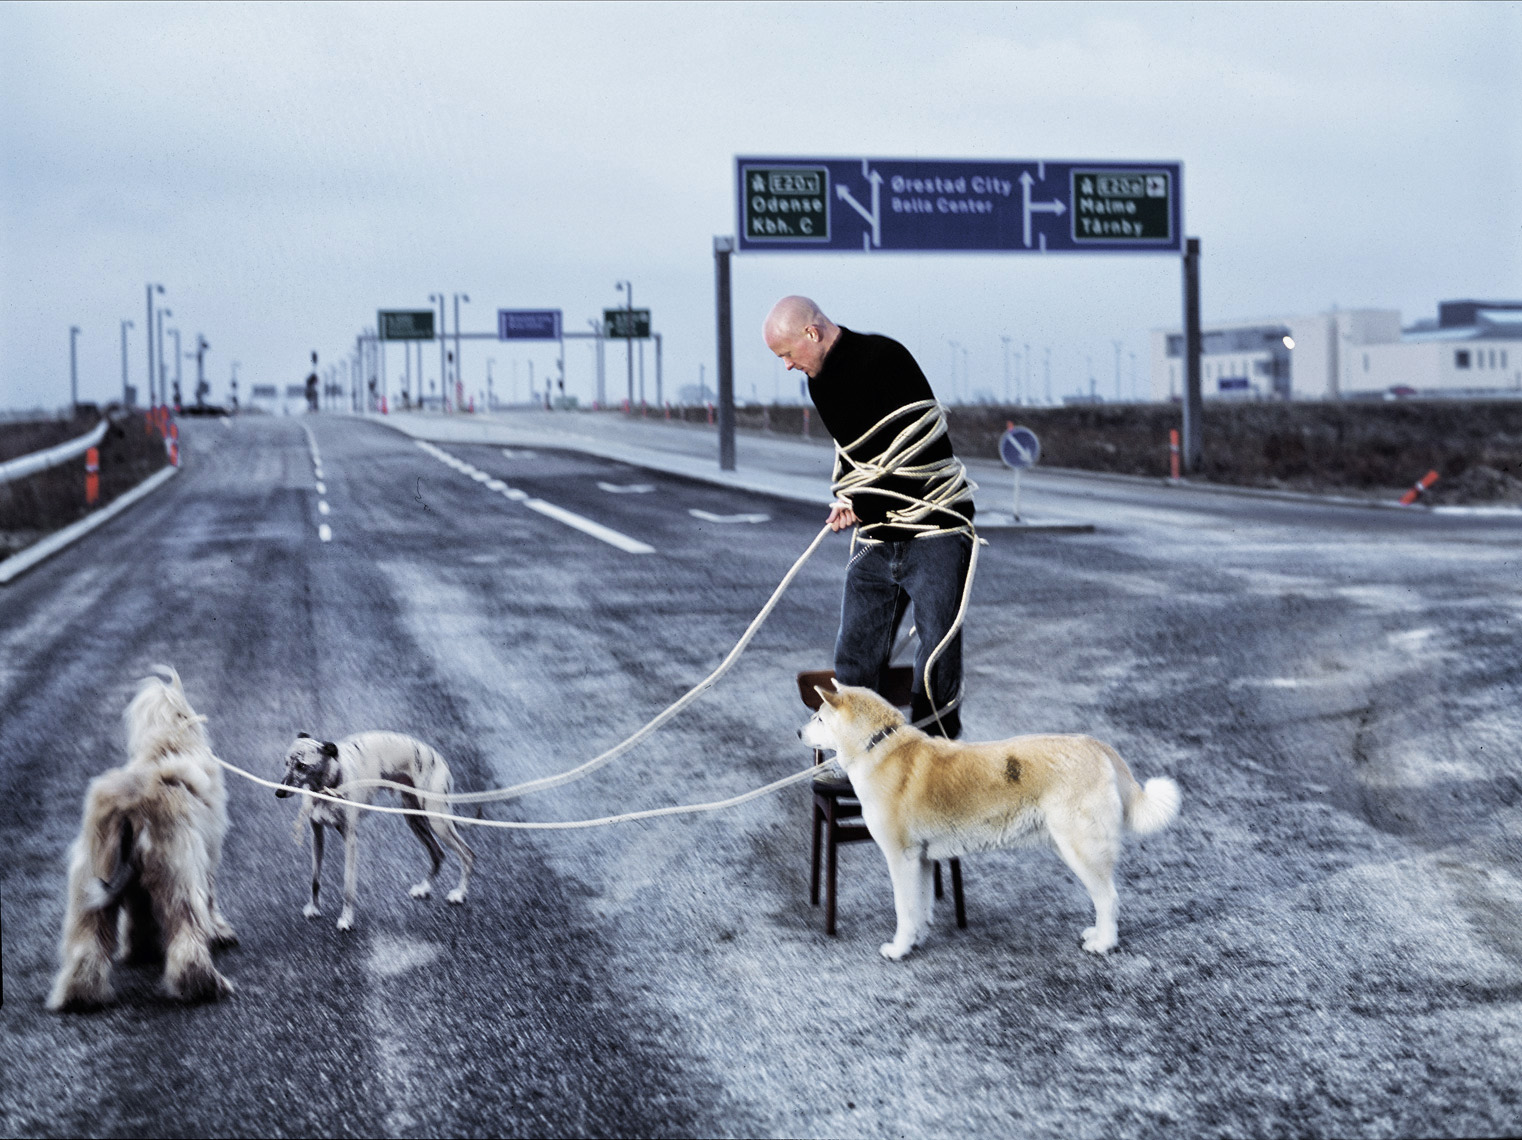 people_031.jpg,Per Morten Abrahamsen,Danish photography, Denmark,Danmark,København,Copenhagen, portrait photography,portraiture,portrait,portraits,kendis,celebrity,komiker,stand-up,comedian,hunde,dogs,freeway